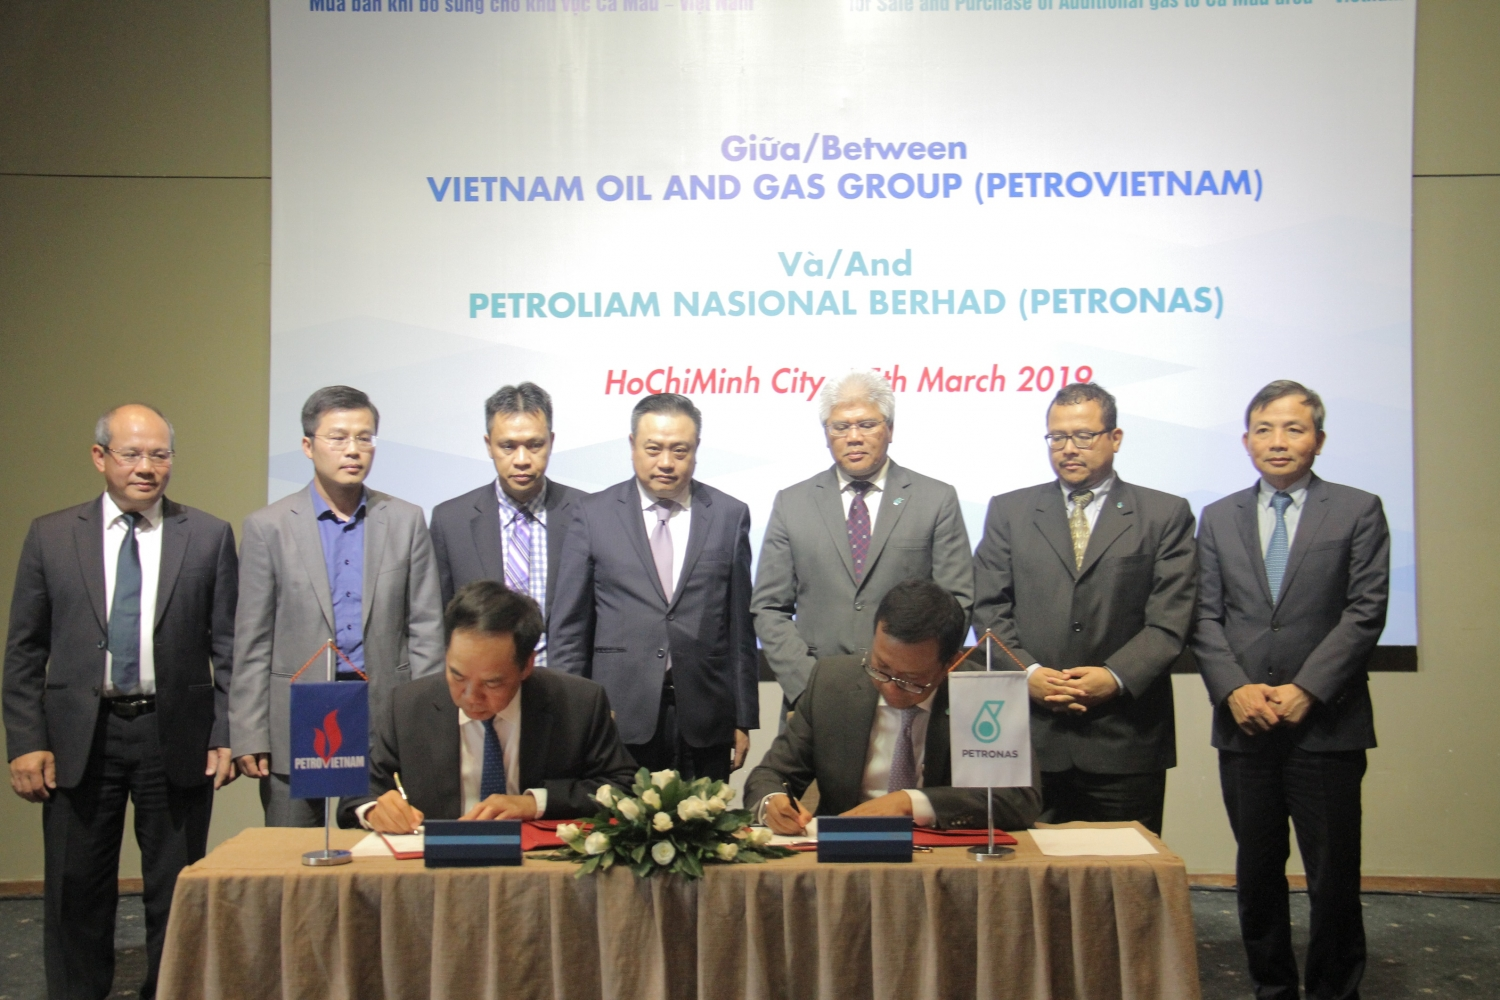 Petrovietnam and Petronas signs head of agreement for gas sale and purchase